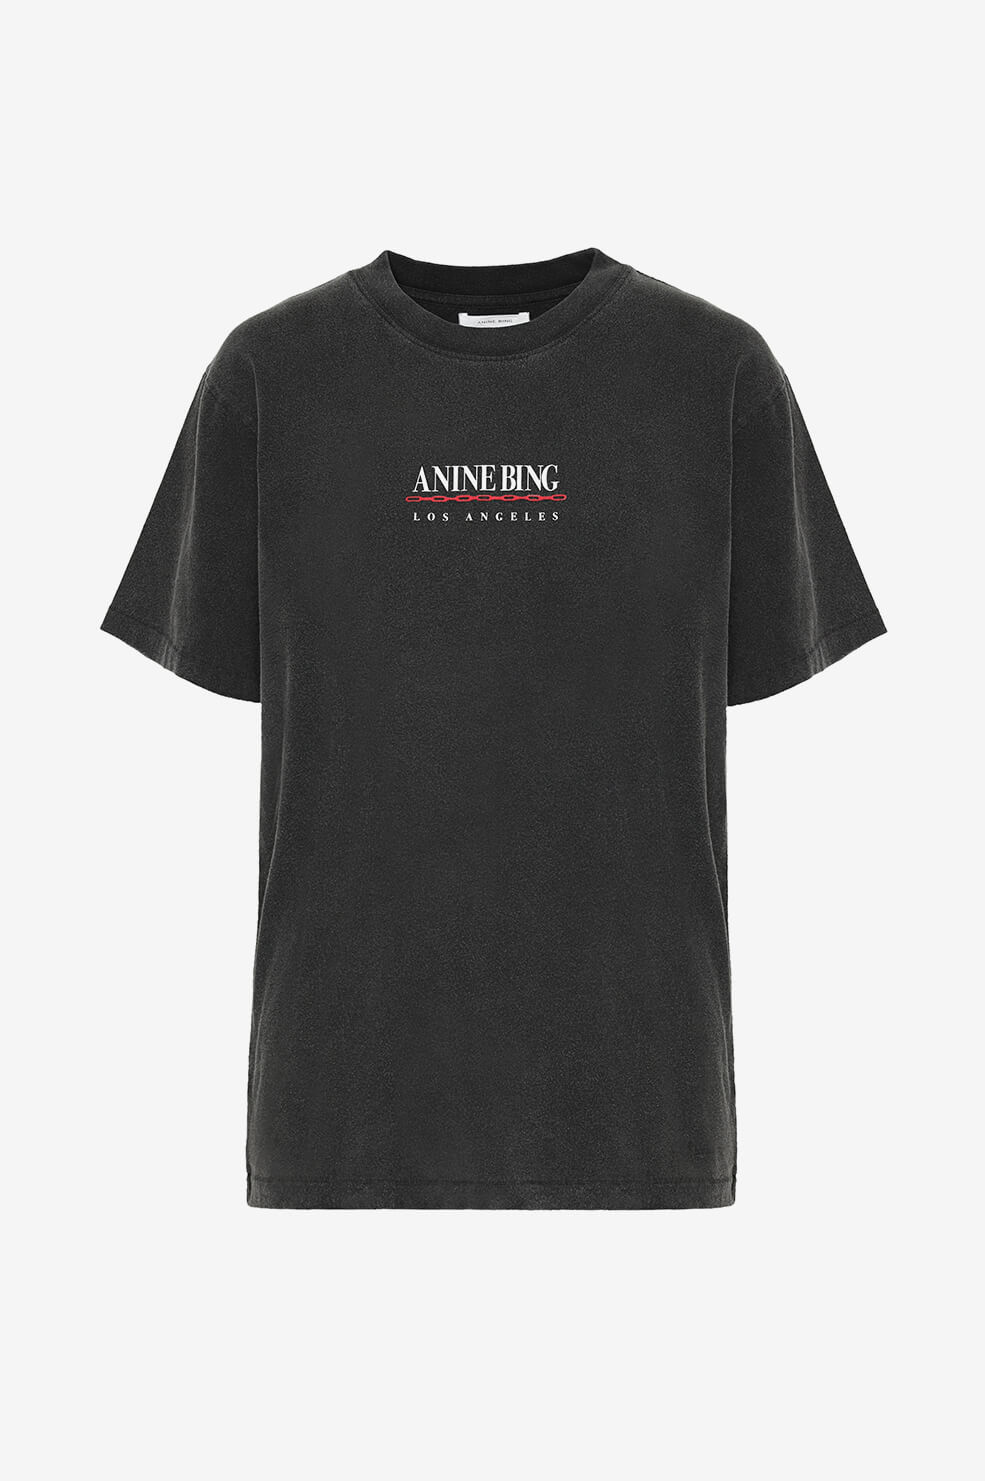 ANINE BING Lili Tee Link - Washed Black